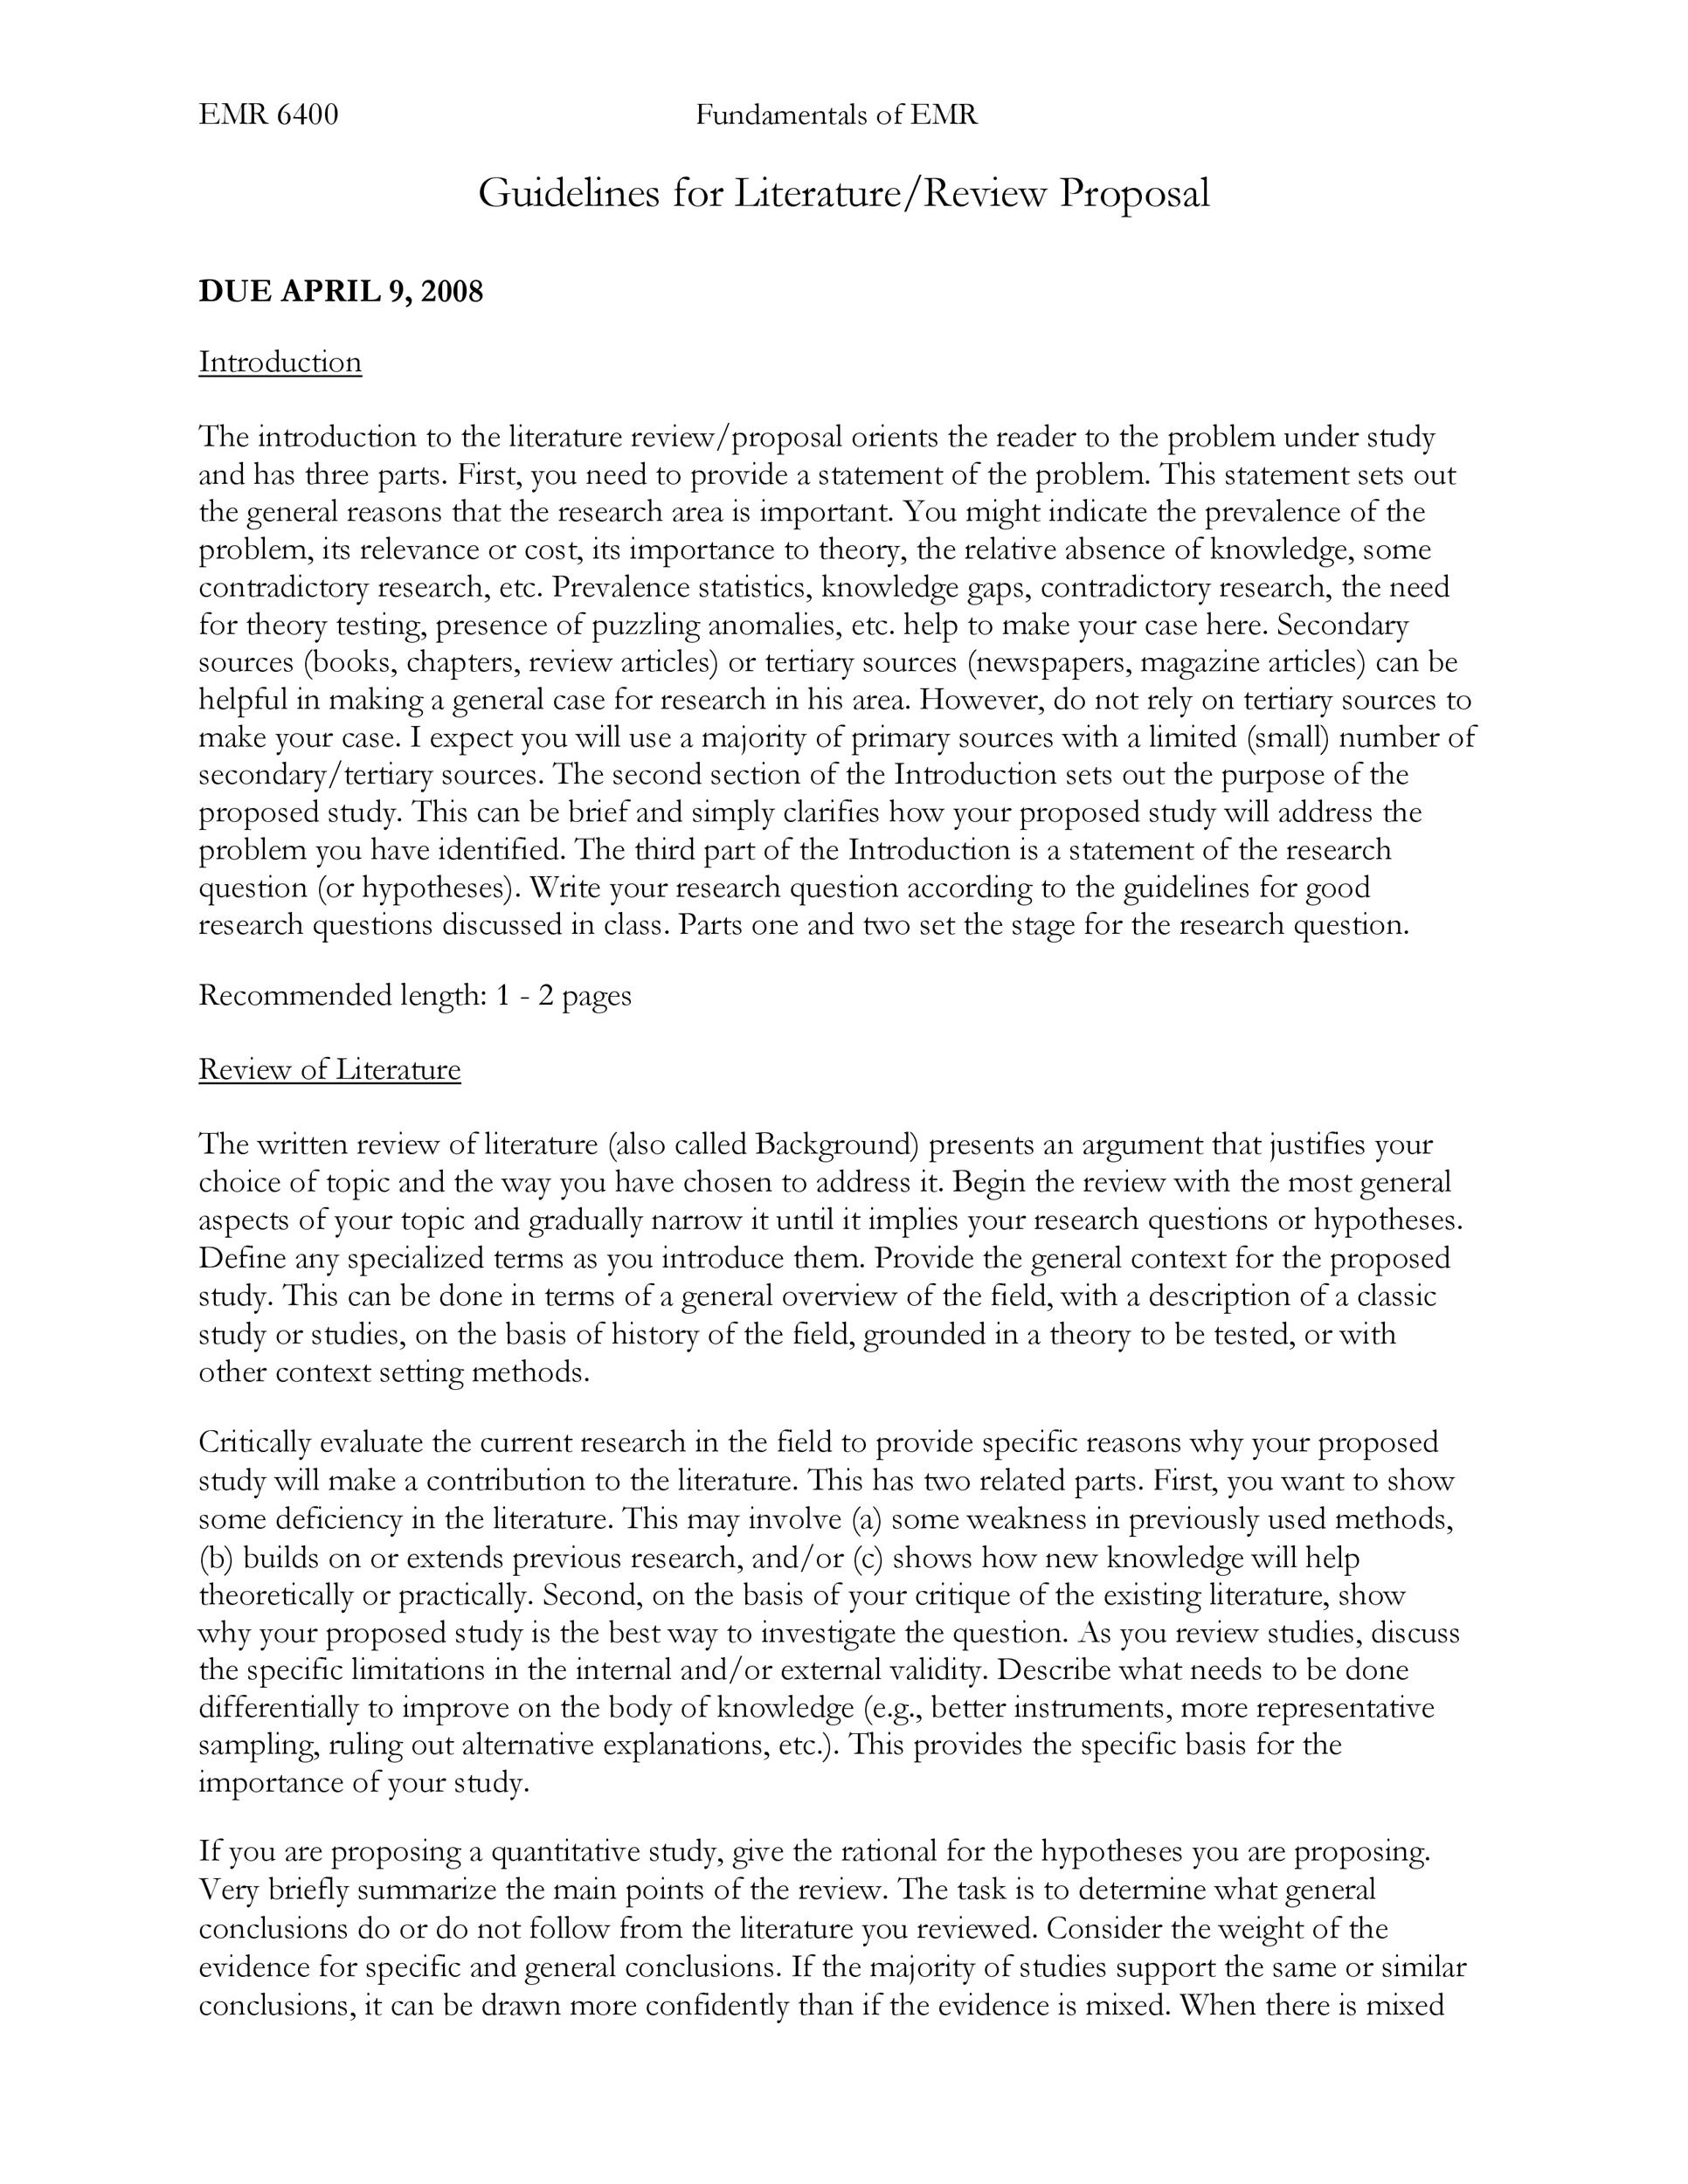 Free literature review template 11